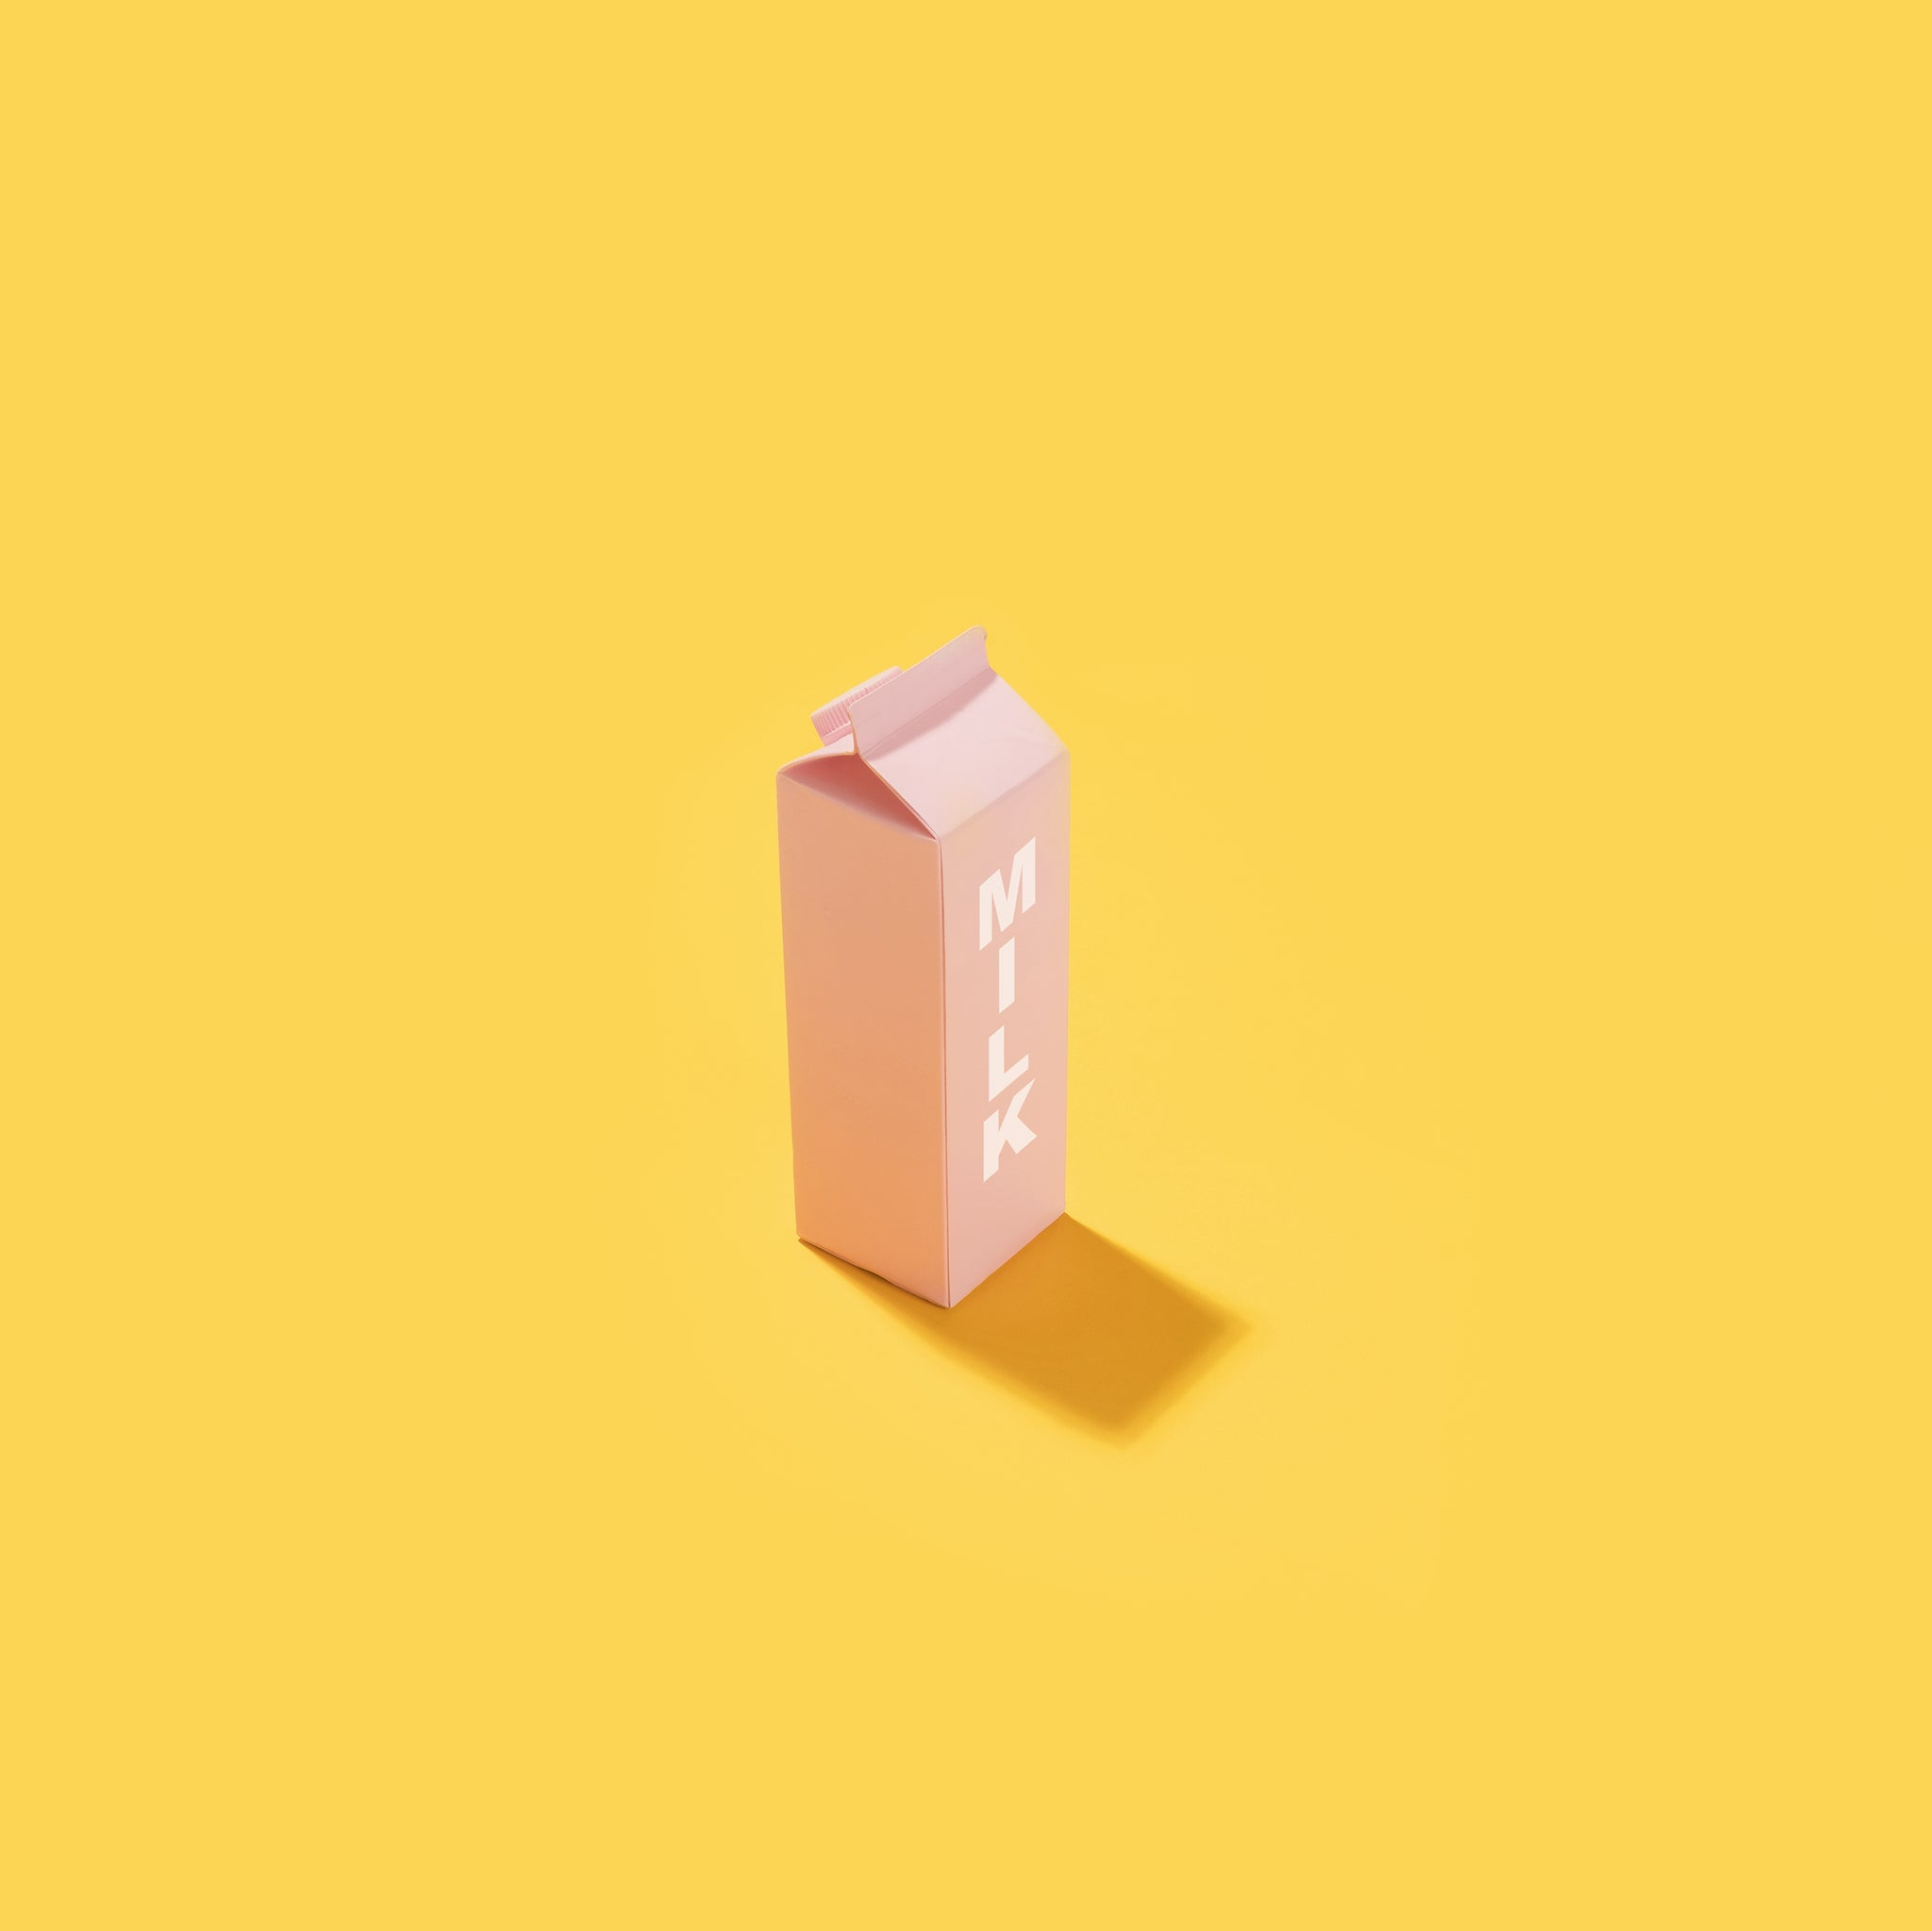 Pastel pink milk carton on a yellow background